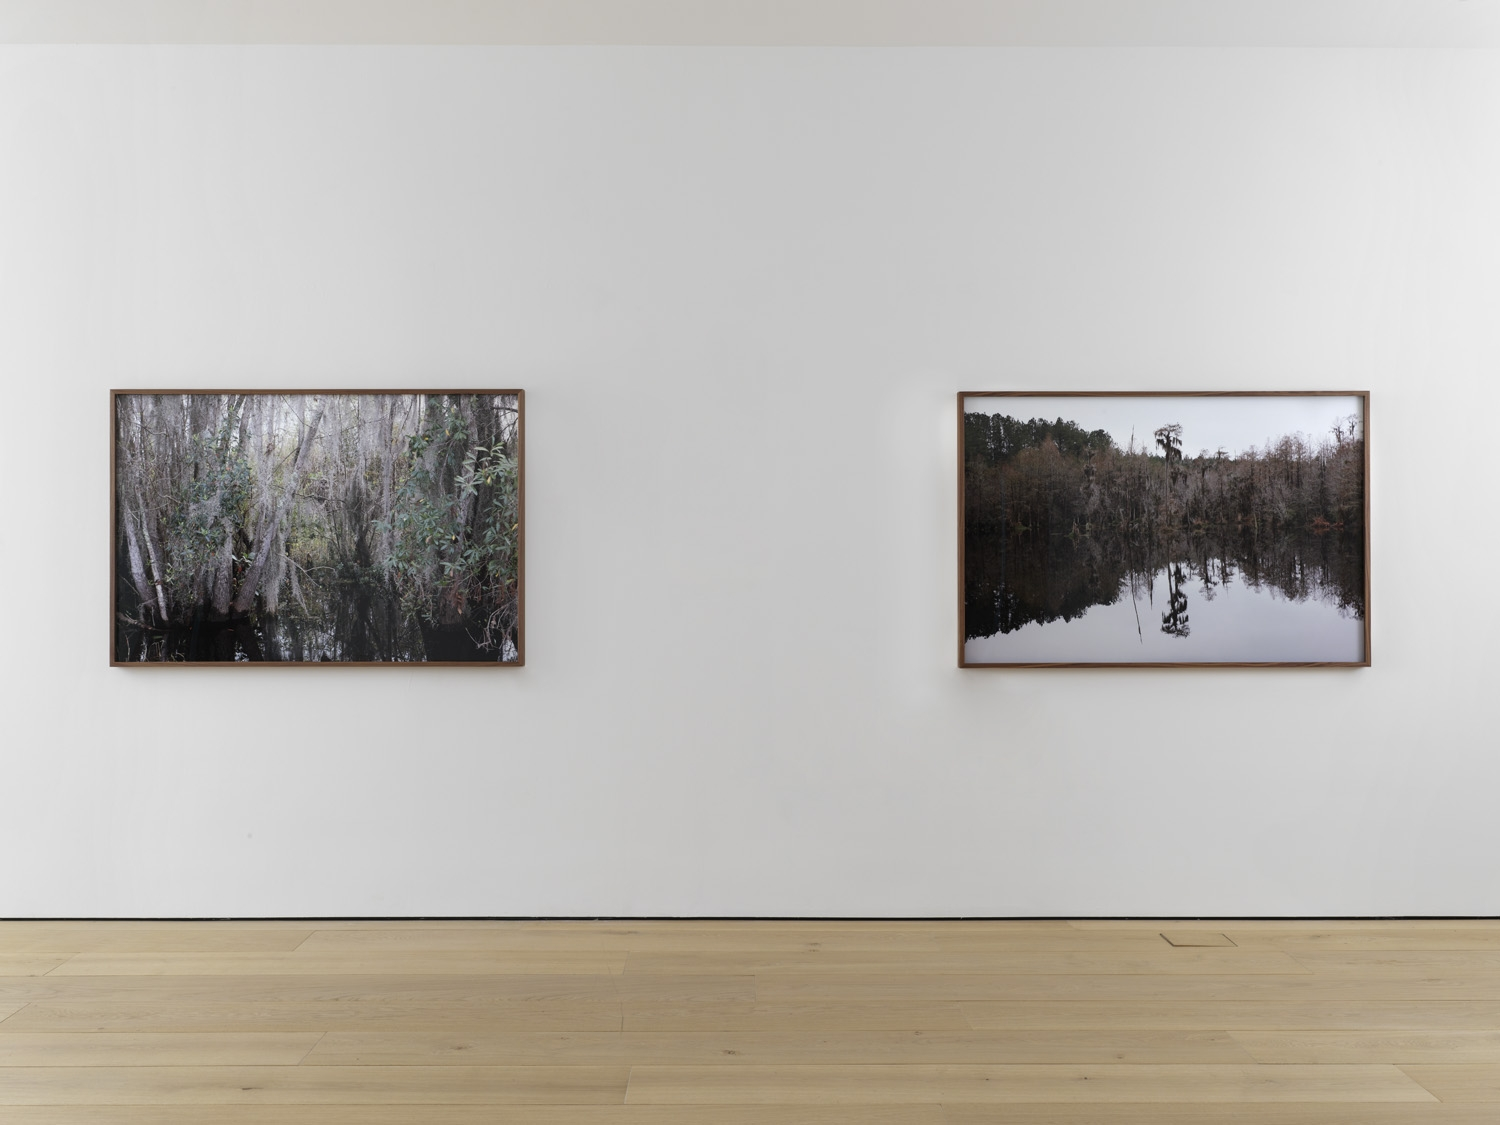 Seventh installation view of the exhibition Catherine Opie: Rhetorical Landscapes at Lehmann Maupin New York